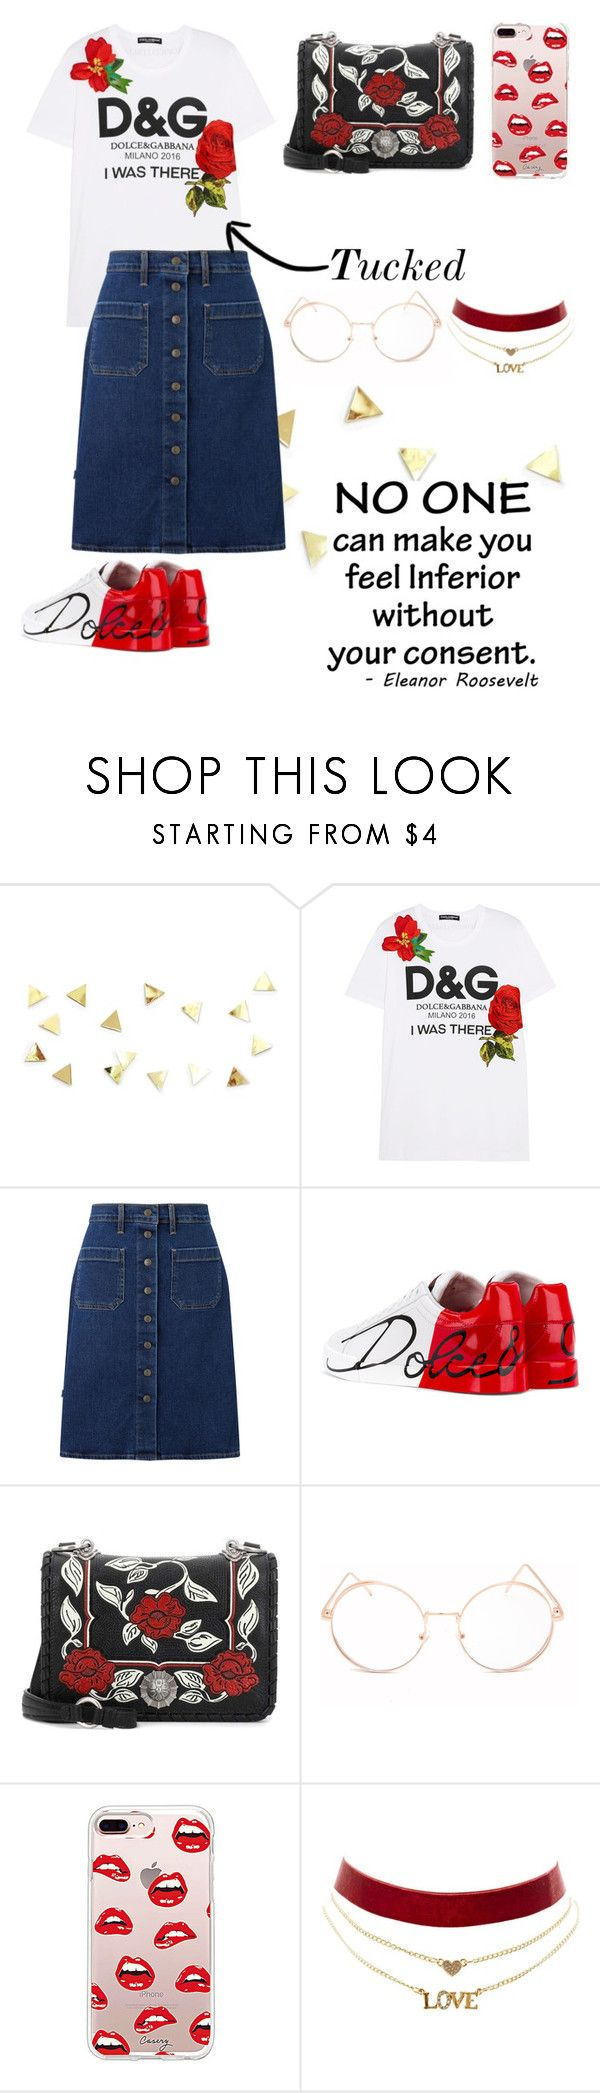 """""""Untitled #520"""" by hxrrible ❤ liked on Polyvore featuring Dolce&Gabbana, Levi's, Miu Miu, Full Tilt, Steve Madden and Charlotte Russe"""